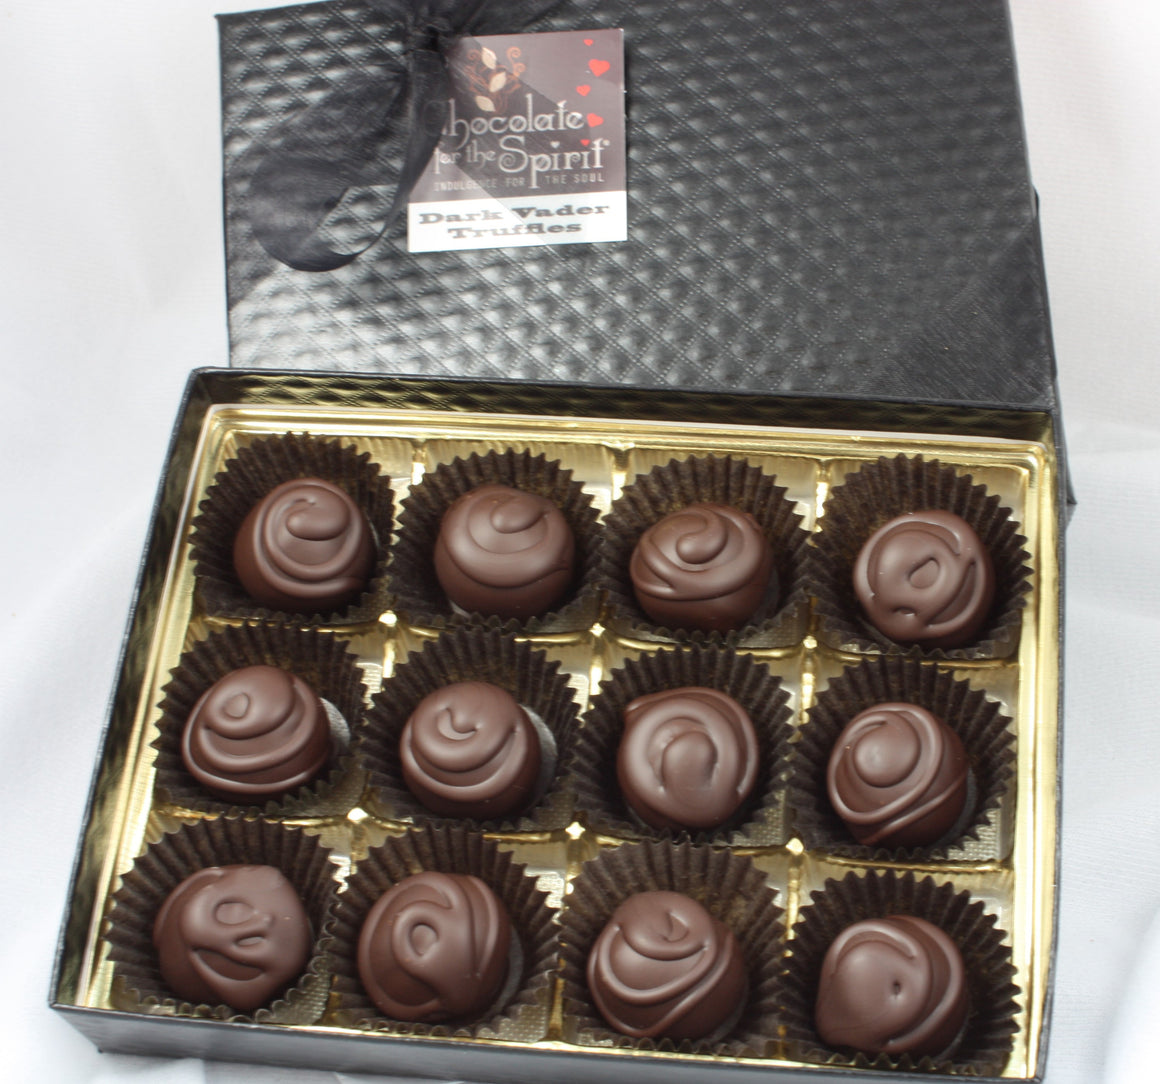 Dozen 72% Dark Chocolate Trufles